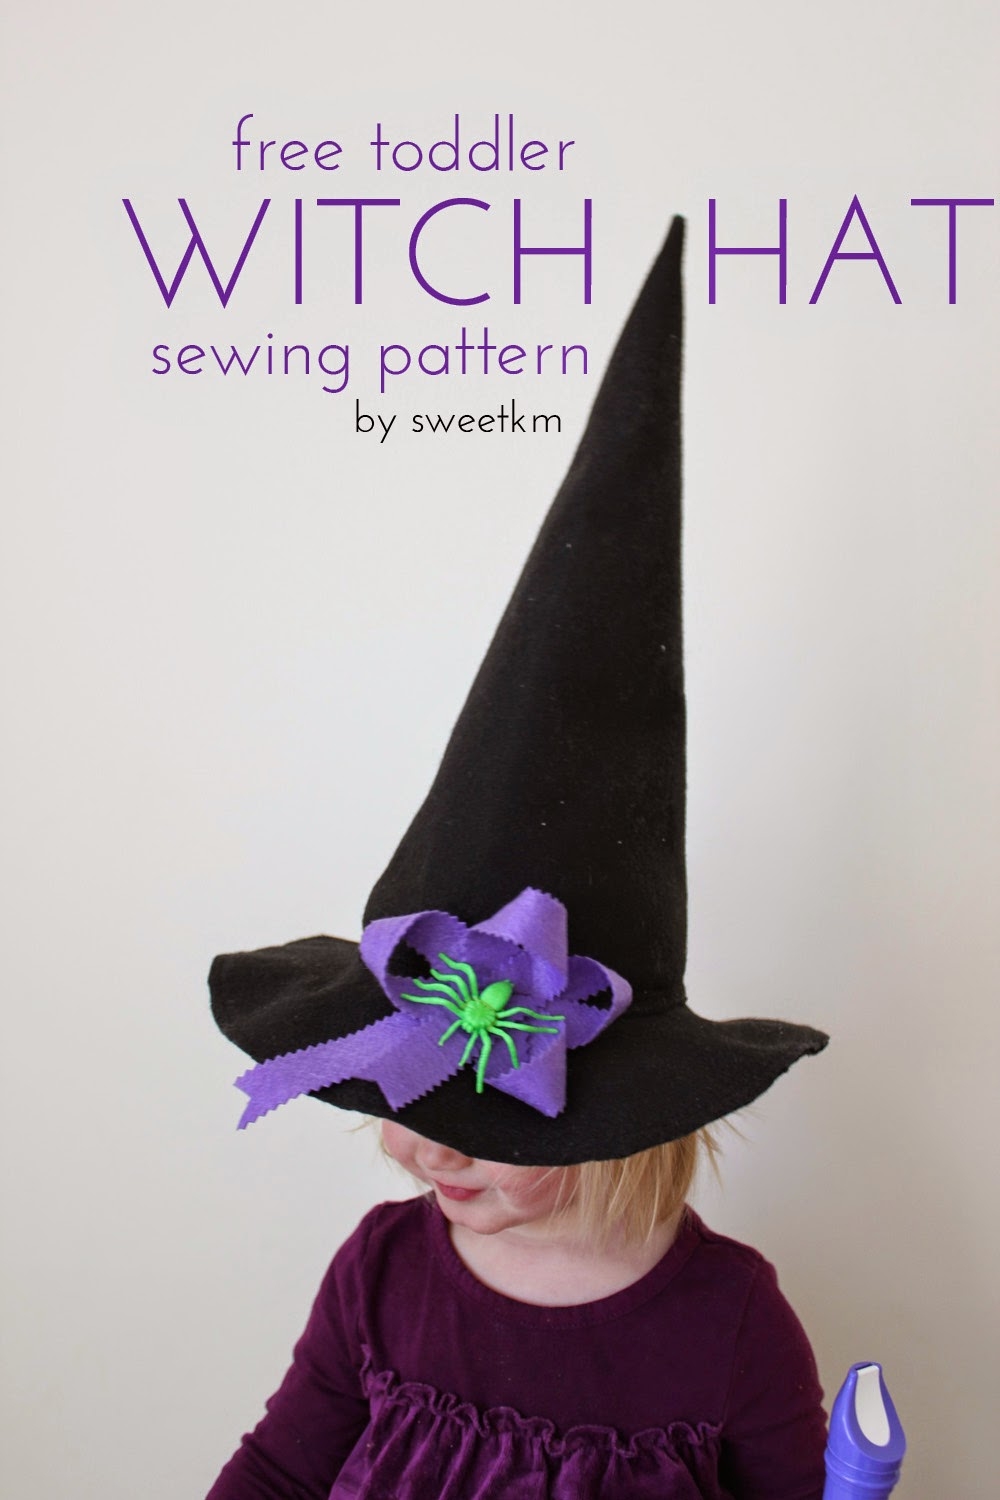 Sweetkm free toddler witch hat sewing pattern free toddler witch hat sewing pattern jeuxipadfo Image collections